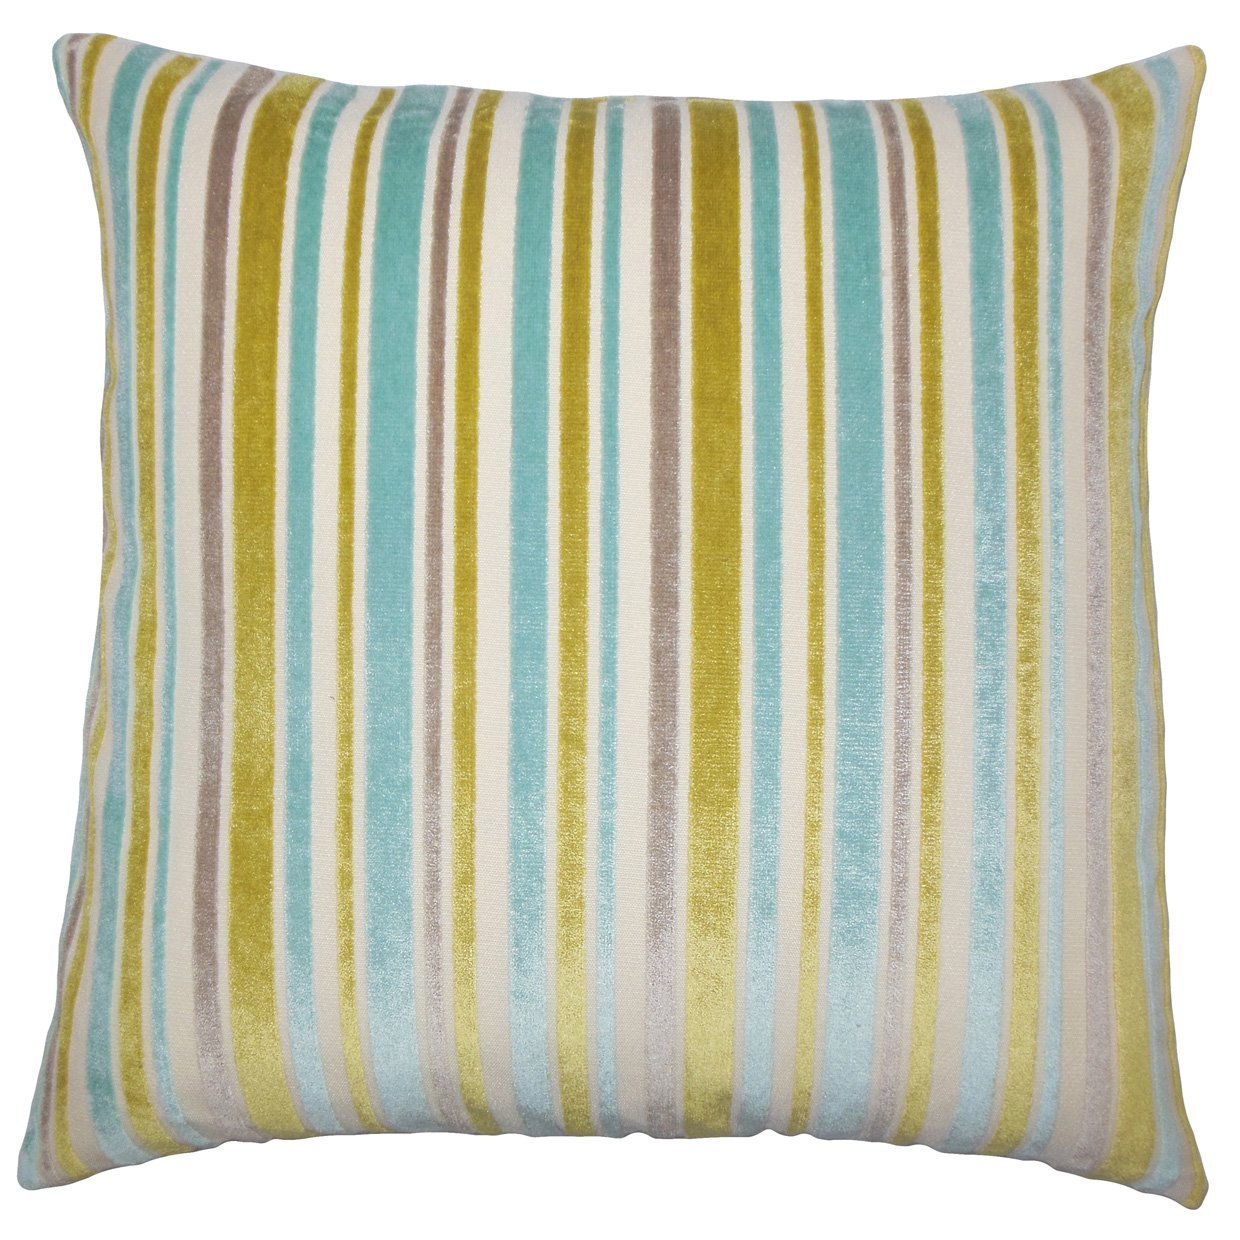 The Pillow Collection Lalana Striped Bedding Sham Caribbean King//20 x 36